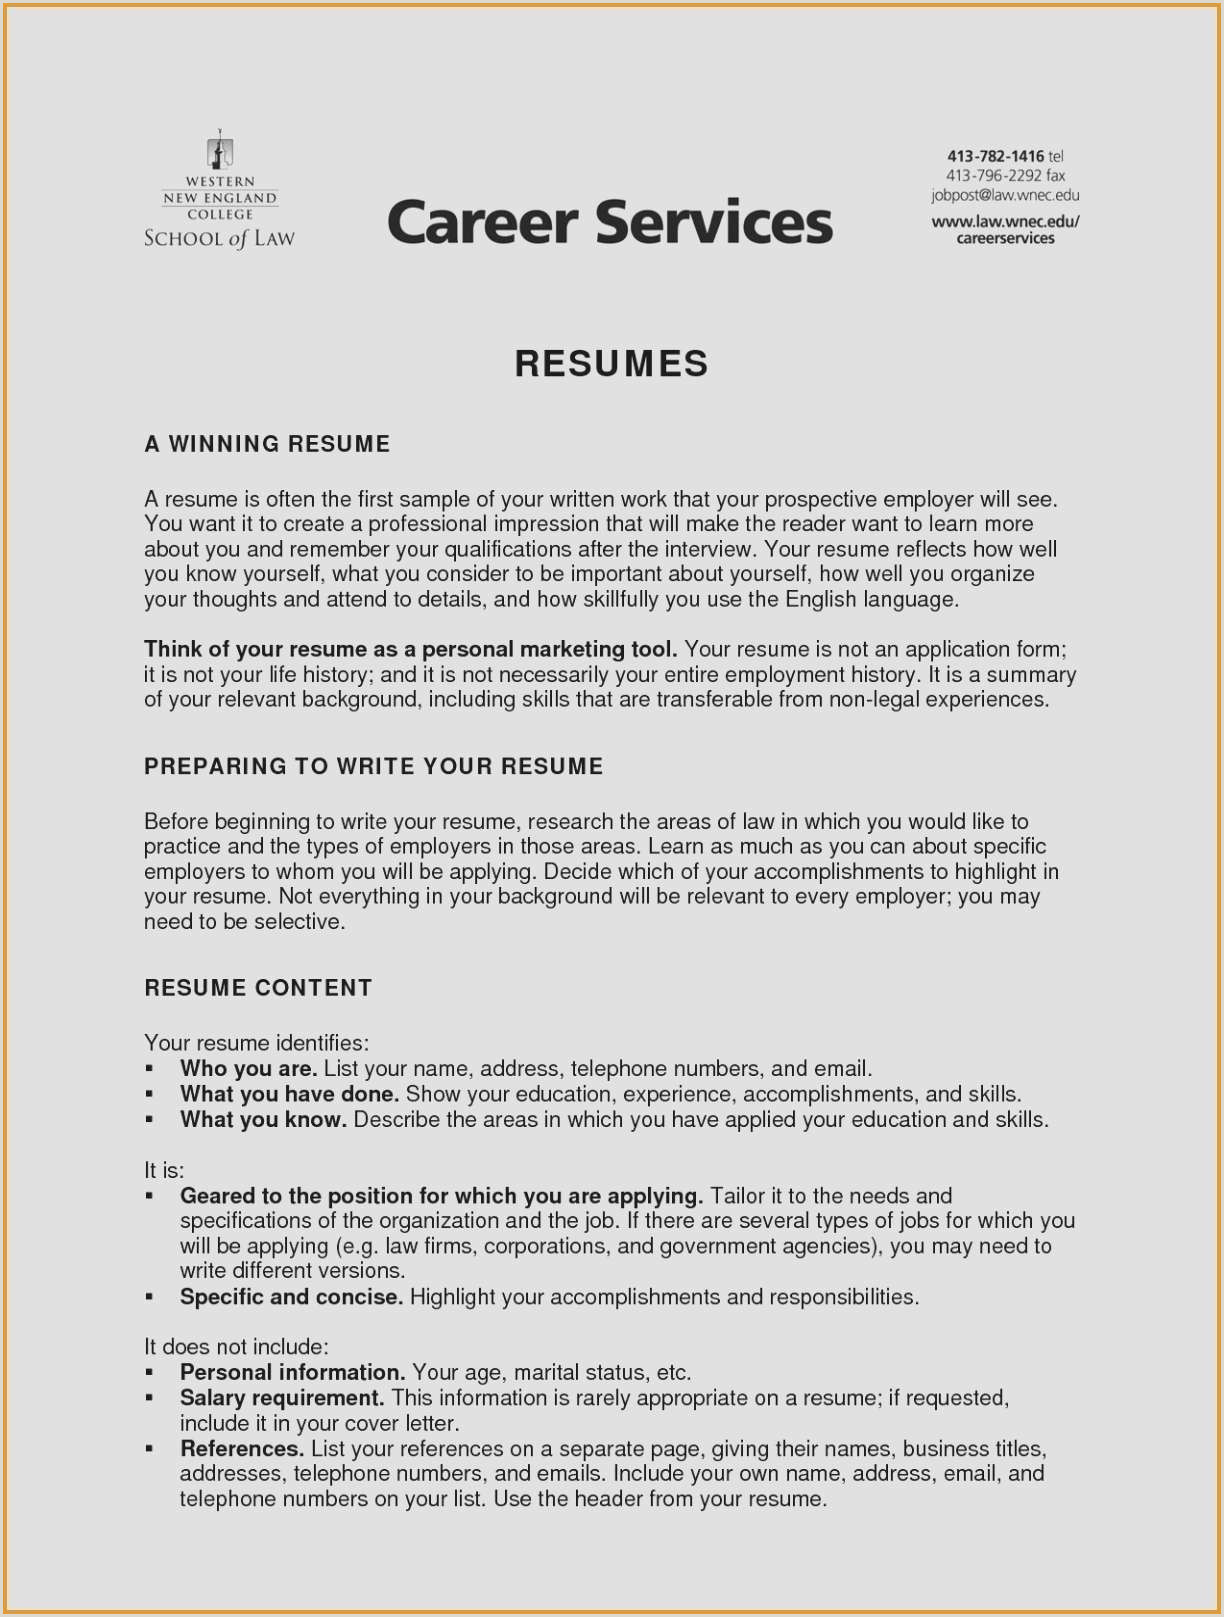 Cv Sample For Legal Jobs Lawyer Cover Letter Sample Awesome Cover Letter For Resume